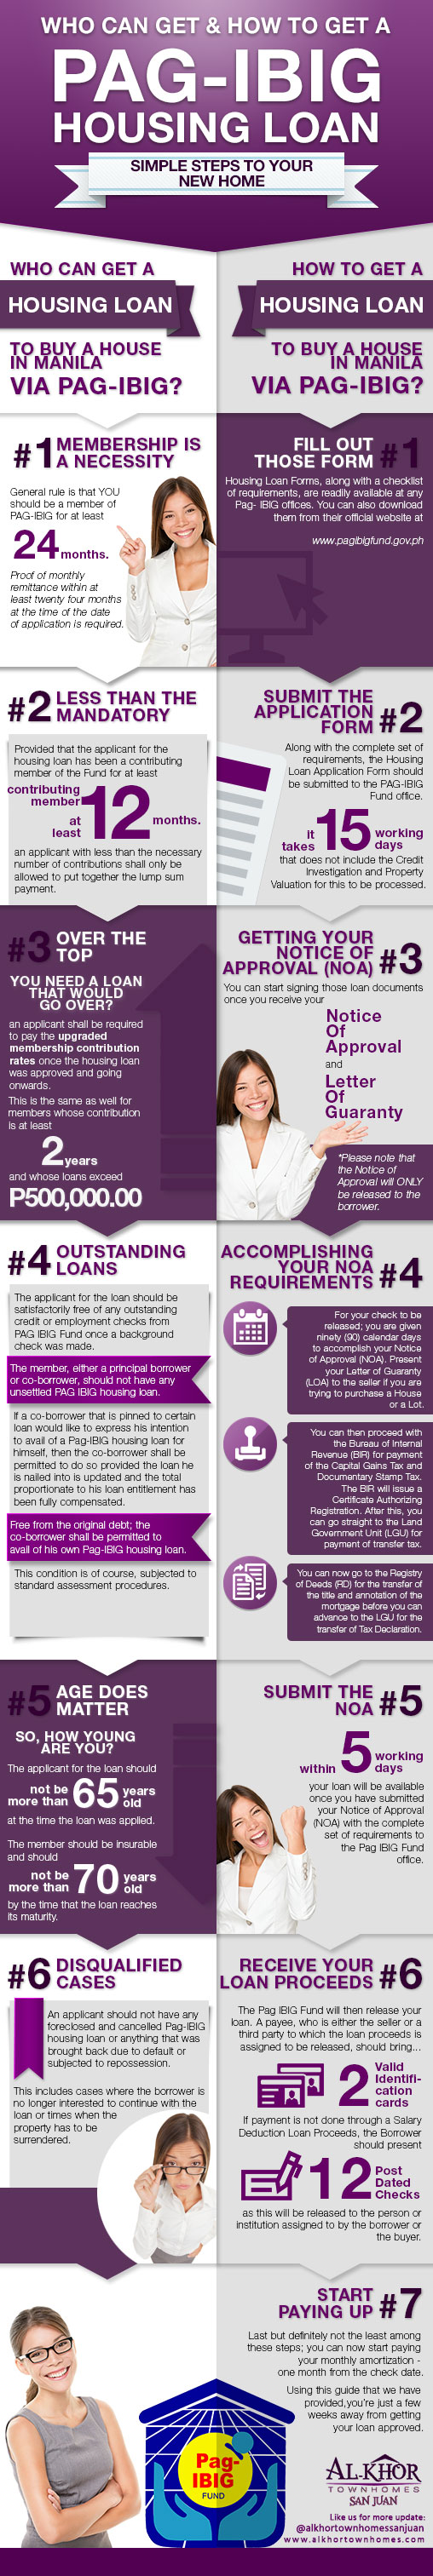 Who can get and how to get a pag-ibig housing loan